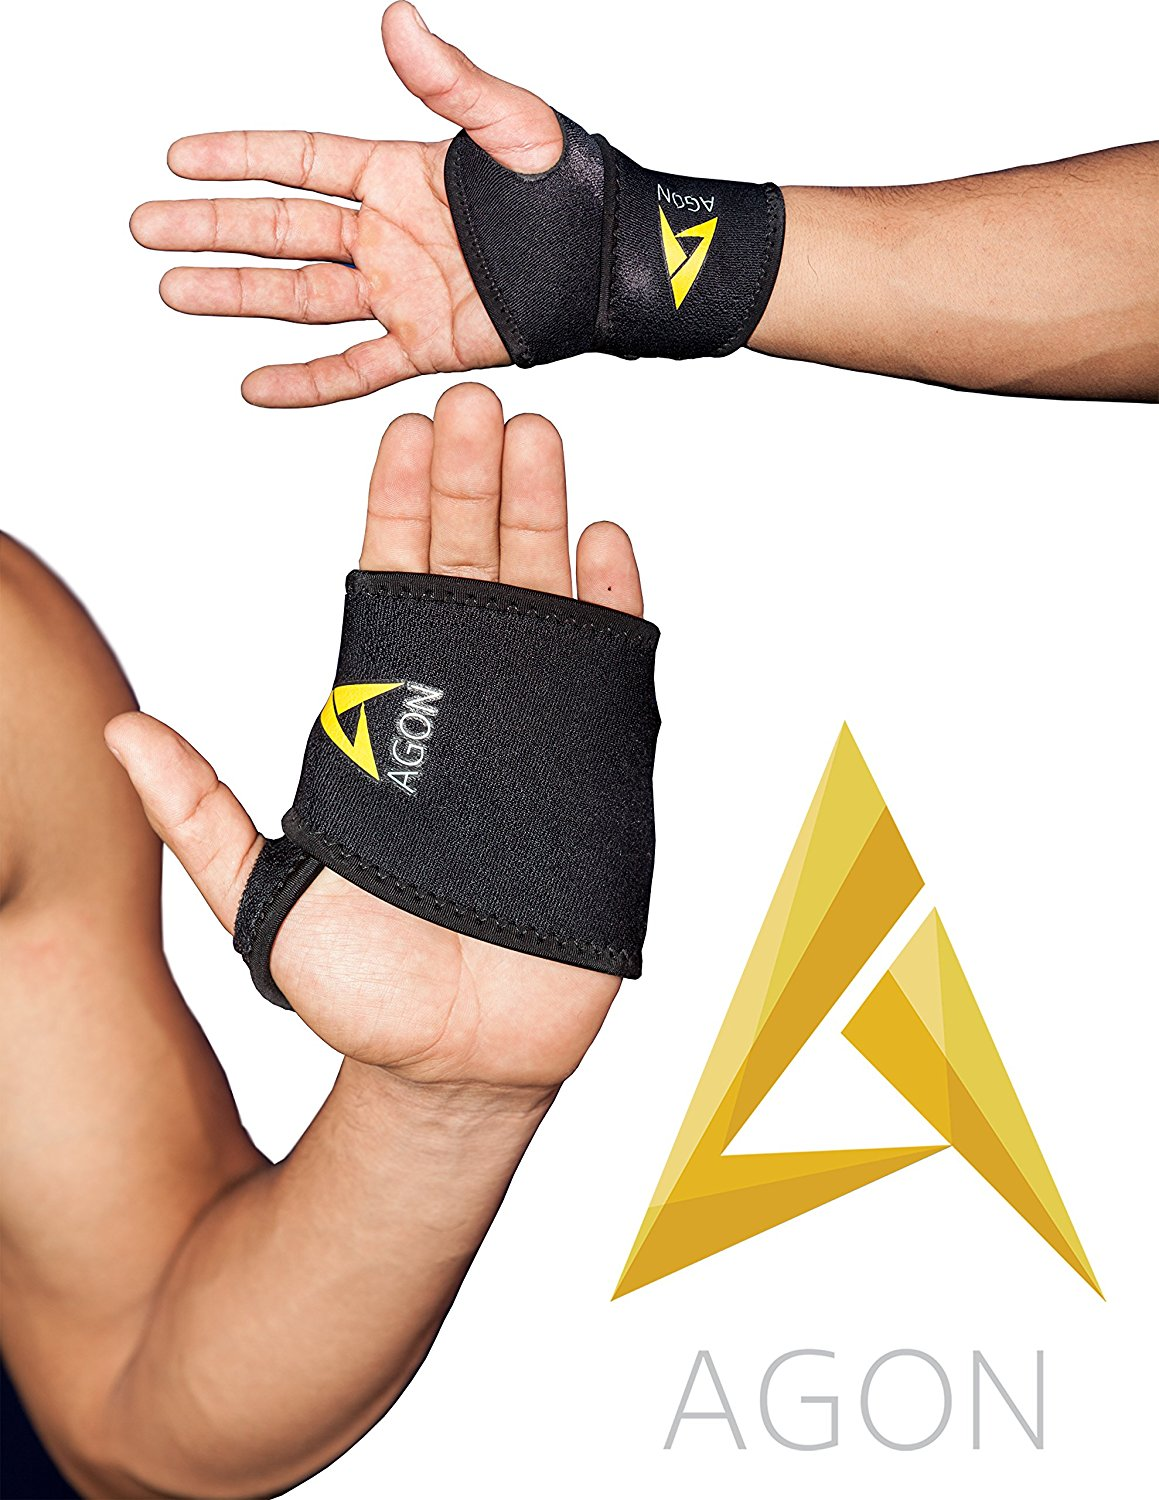 0da0505821 Get Quotations · Agon Adjustable Wrist Brace Support Recovery Neoprene One  Size Fits Most, 1 Compression Sleeve -